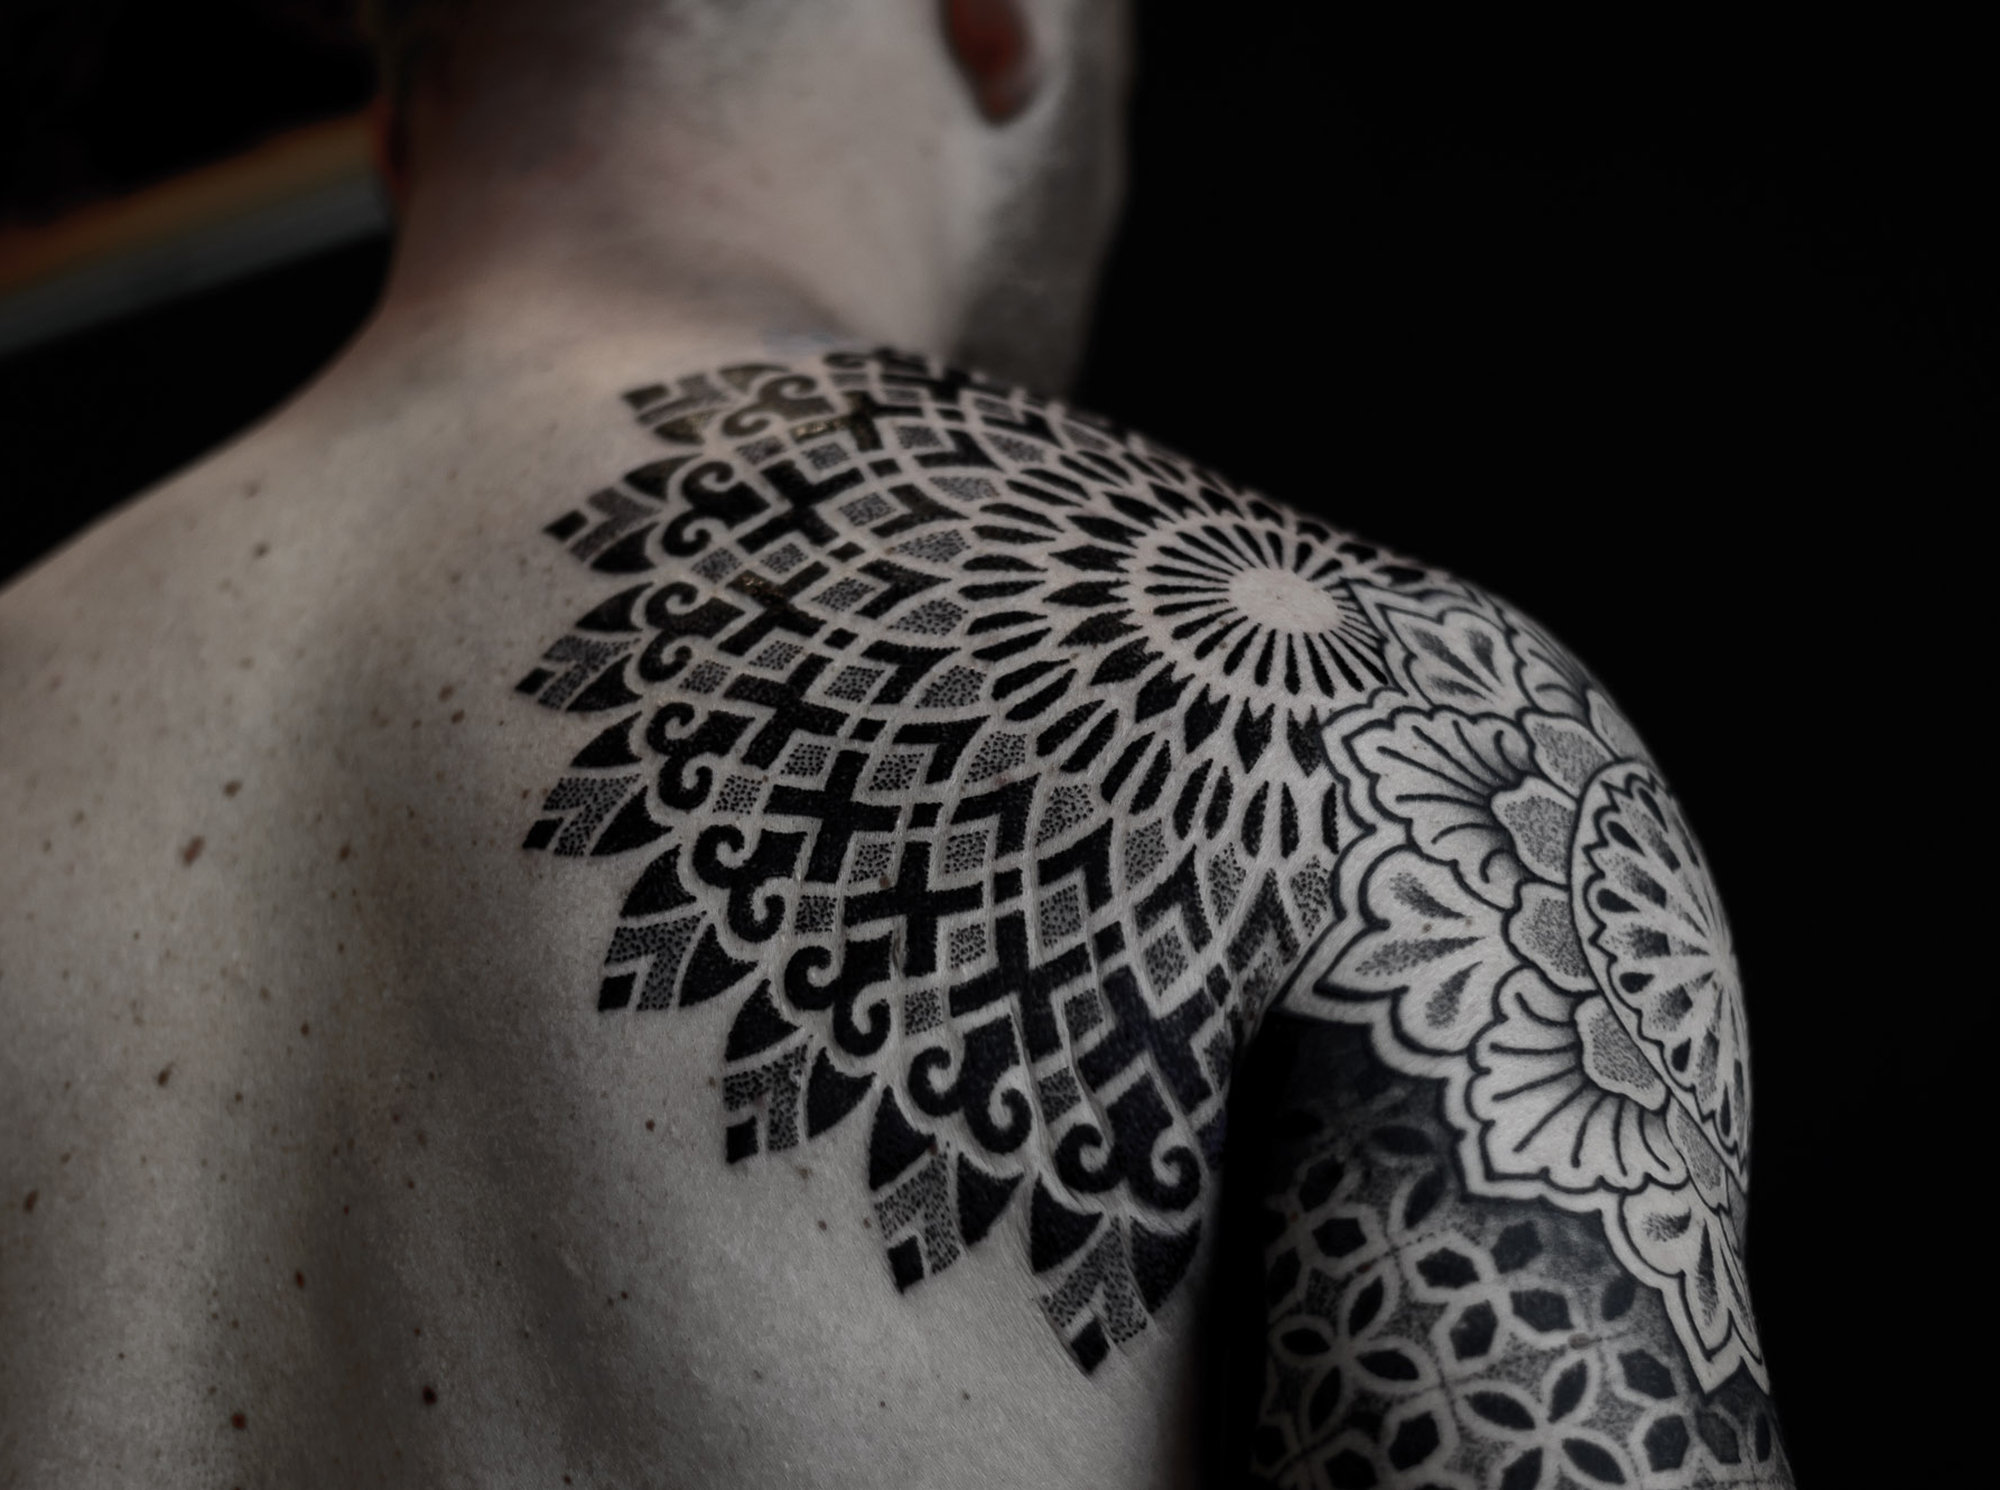 mandala, sacred geometry tattoo by paradox from the netherlands